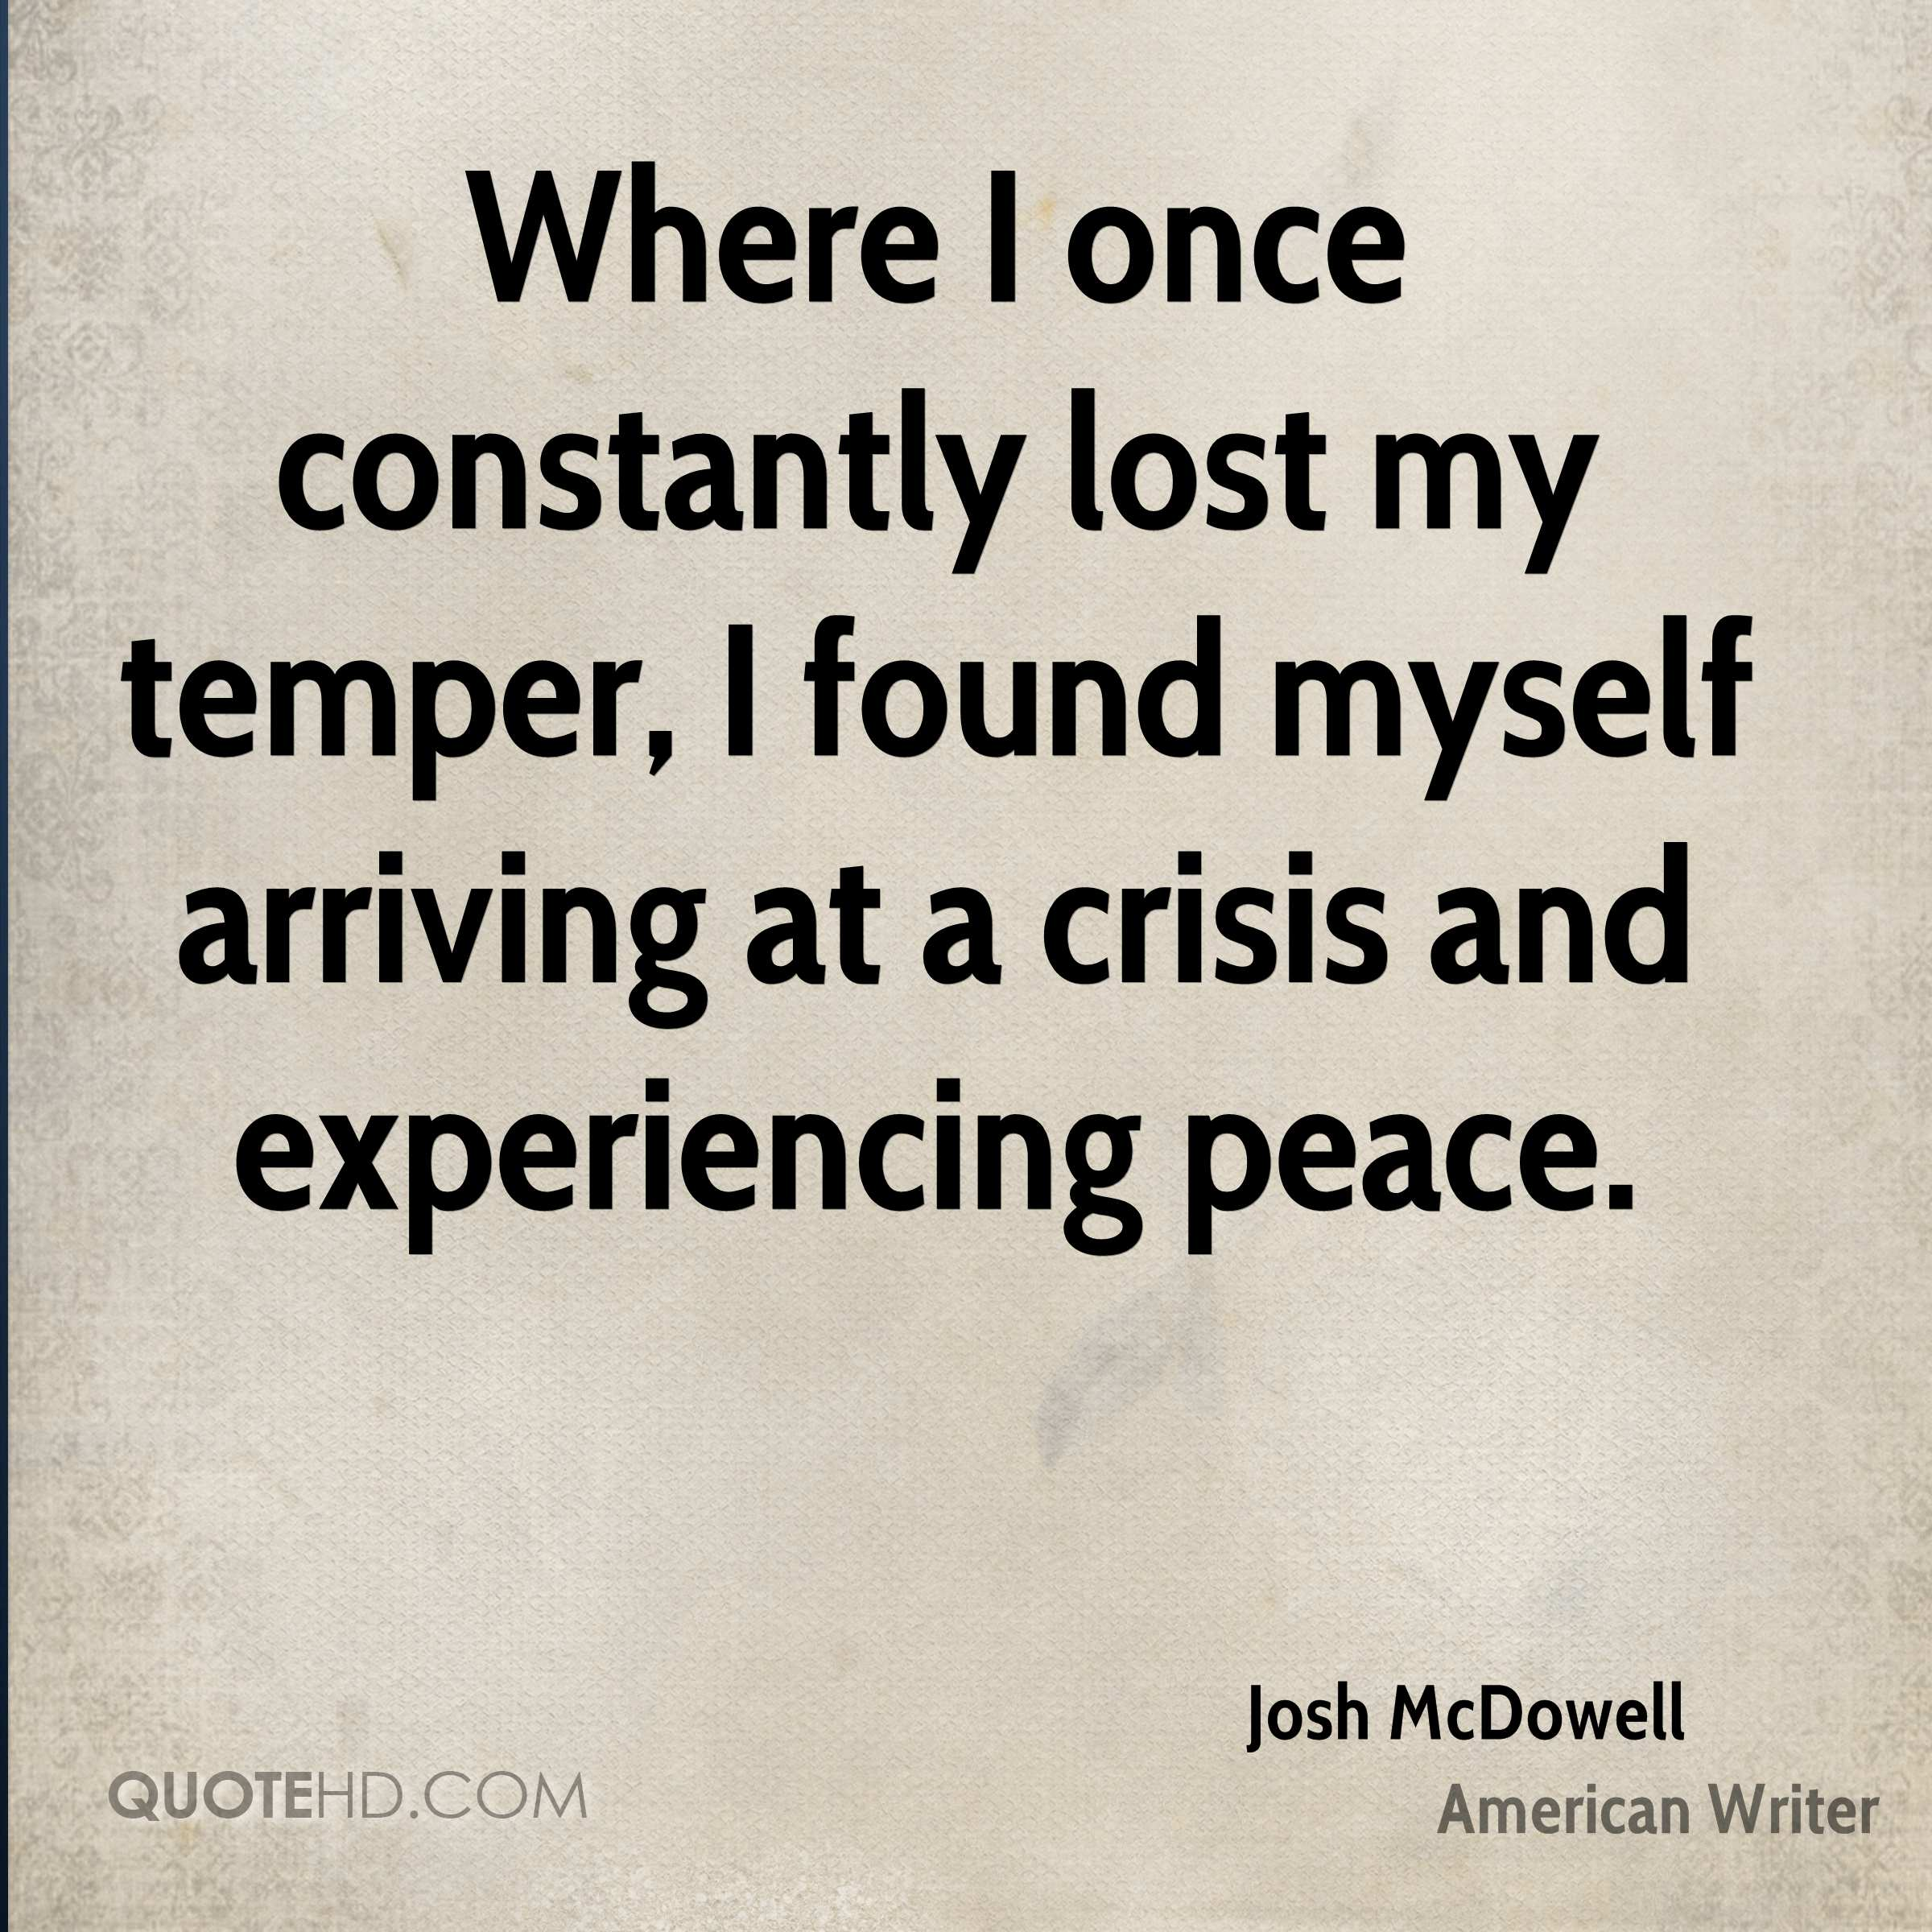 Where I once constantly lost my temper, I found myself arriving at a crisis and experiencing peace.